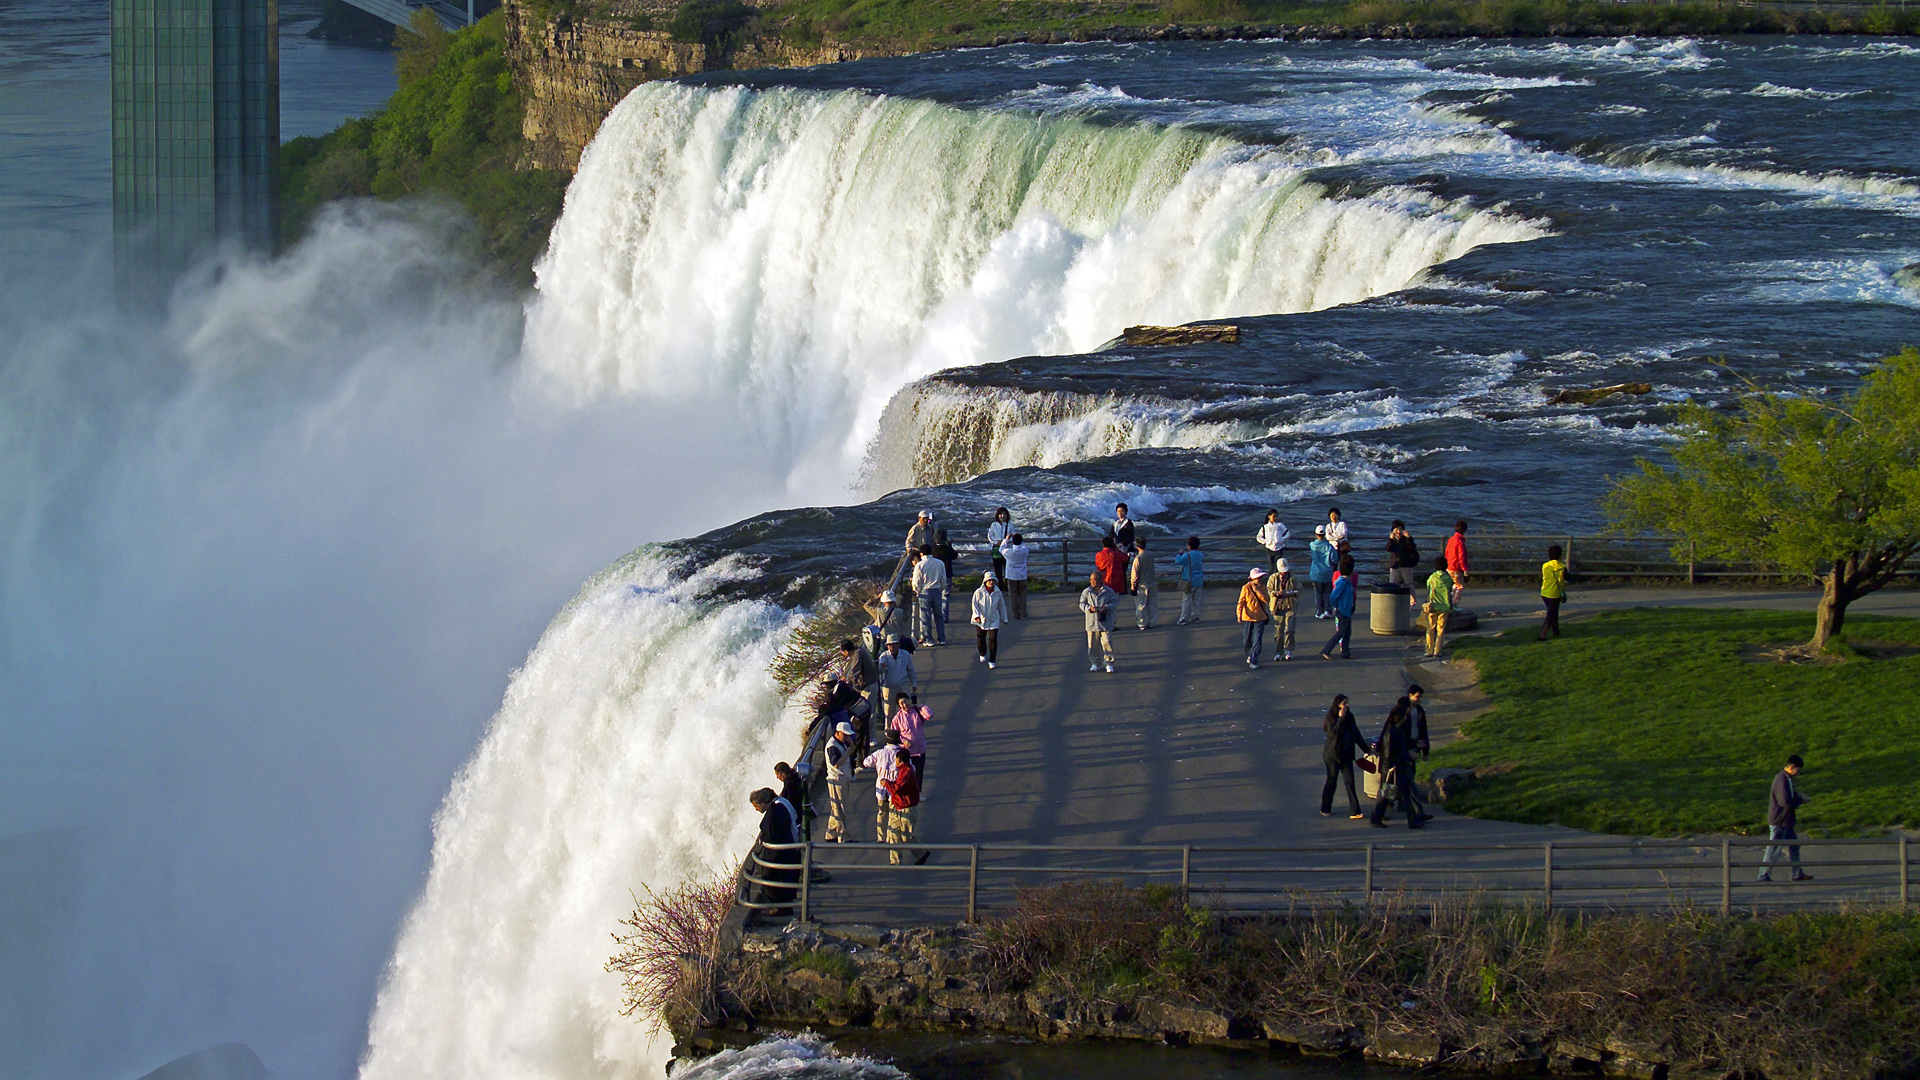 10 Amazing Waterfalls Around The World You Need To See